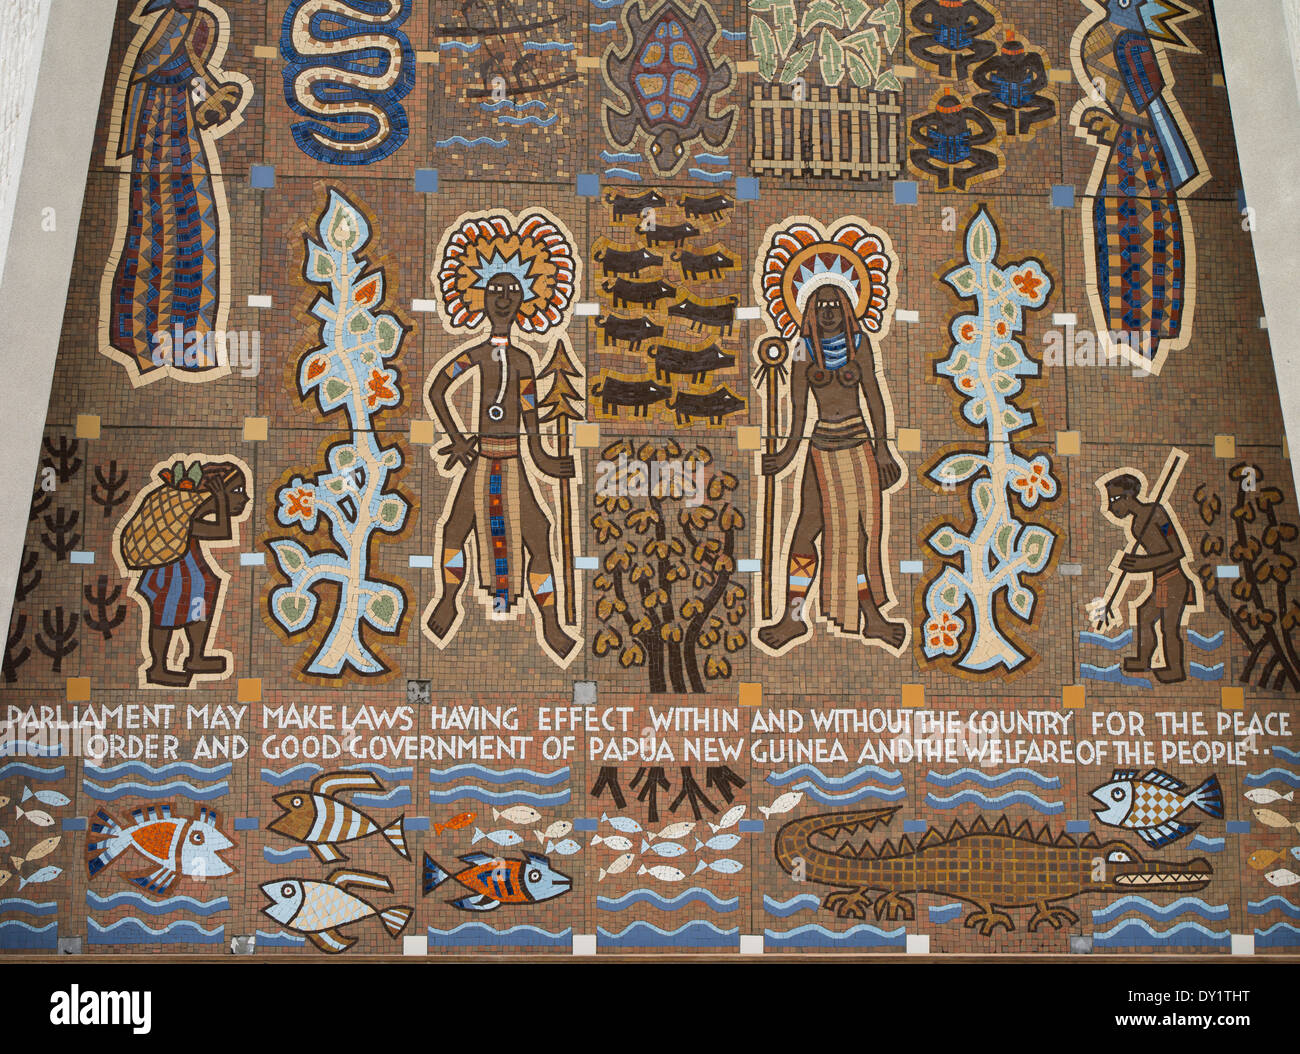 Mural at Parliament Haus, Port Moresby City, Papua New Guinea - Stock Image